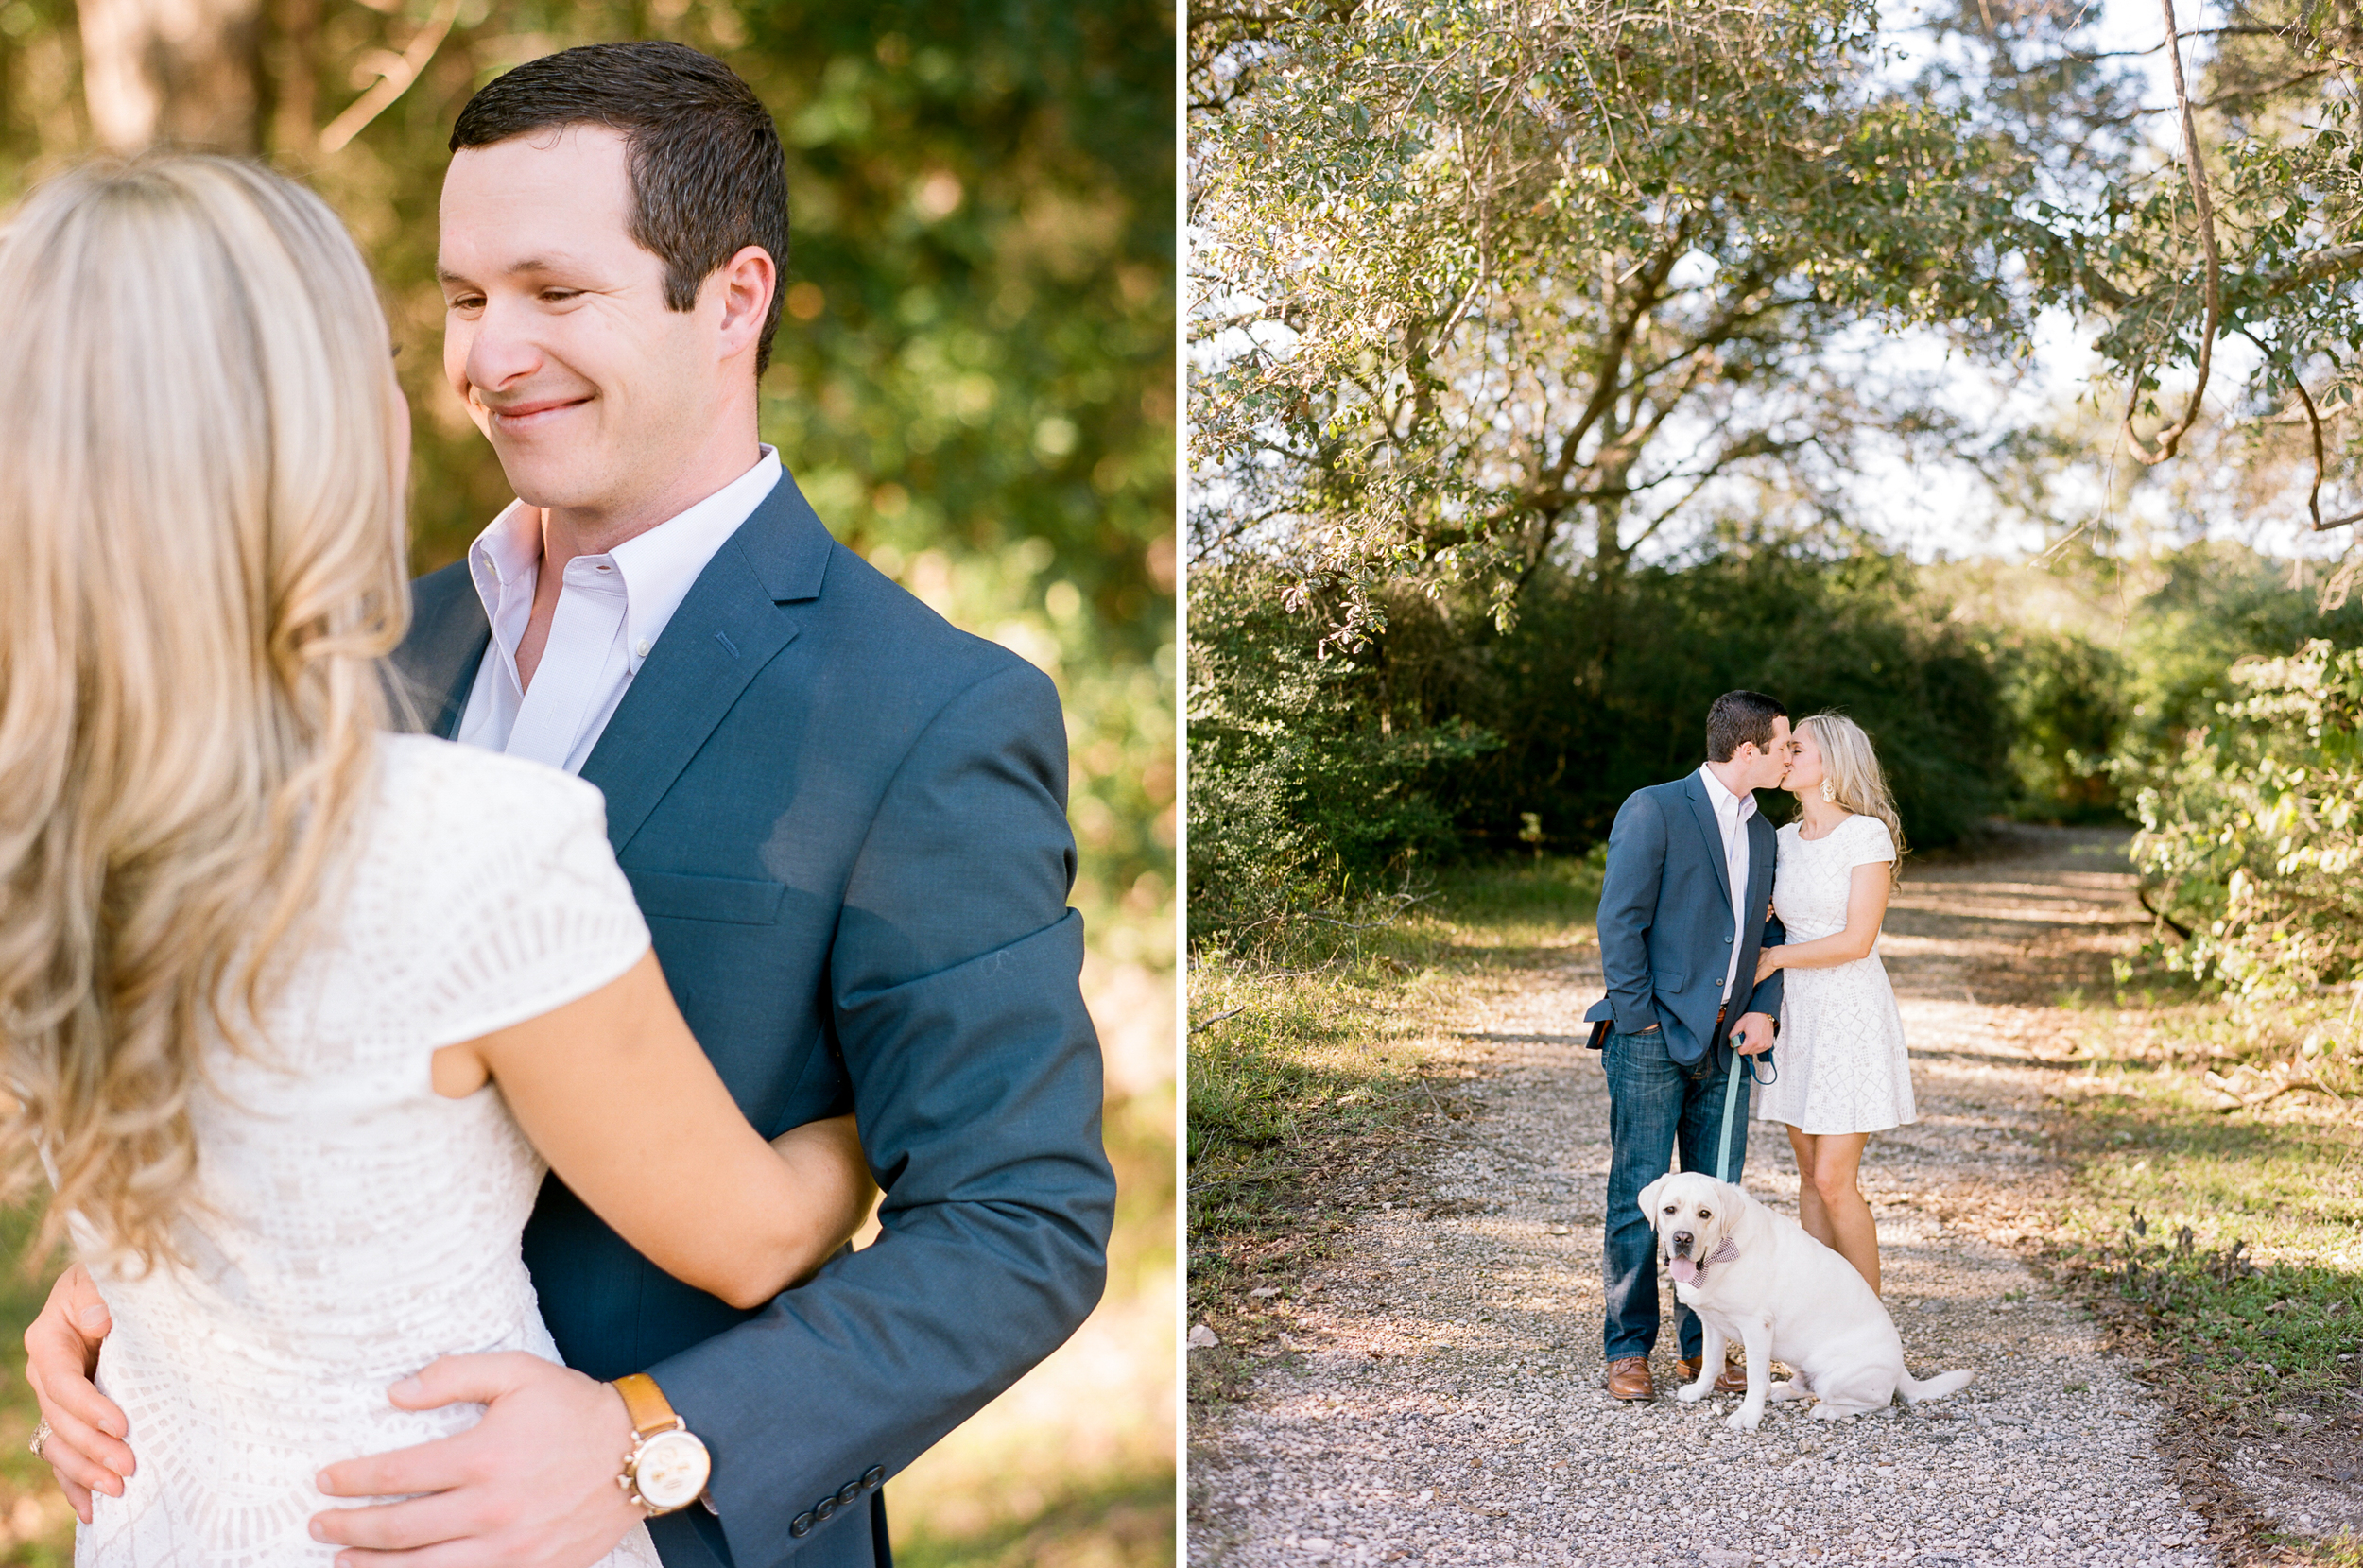 Dana-Fernandez-Photography-Houston-Wedding-Photographer-Film-Fine-Art-Destination-Texas-110.jpg